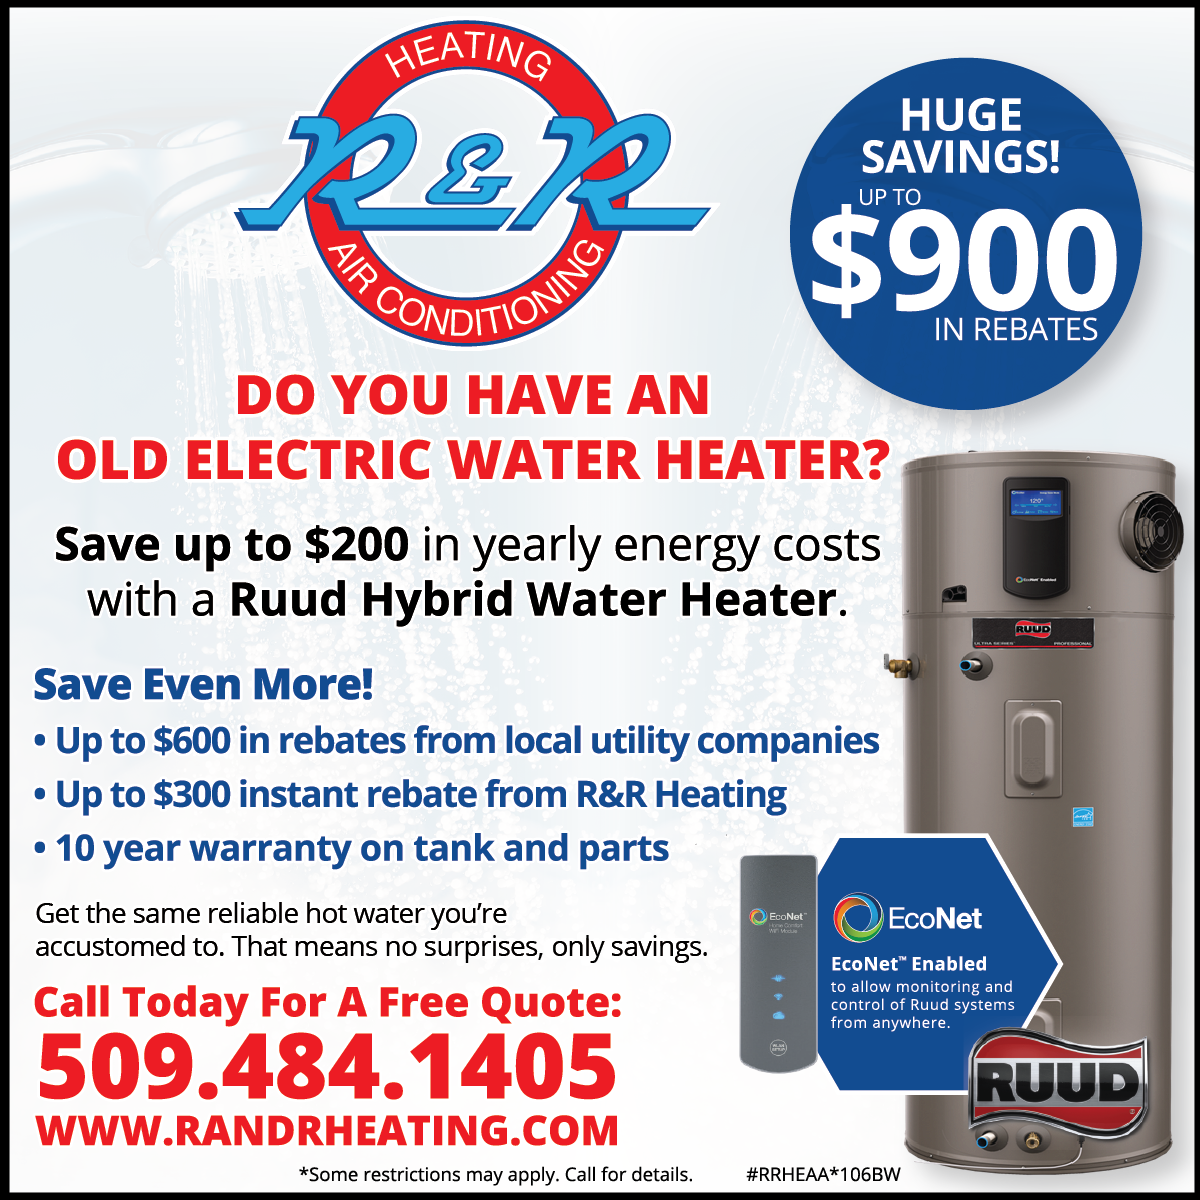 Benefits Of A Heat Pump Water Heater vs. Electric Heat